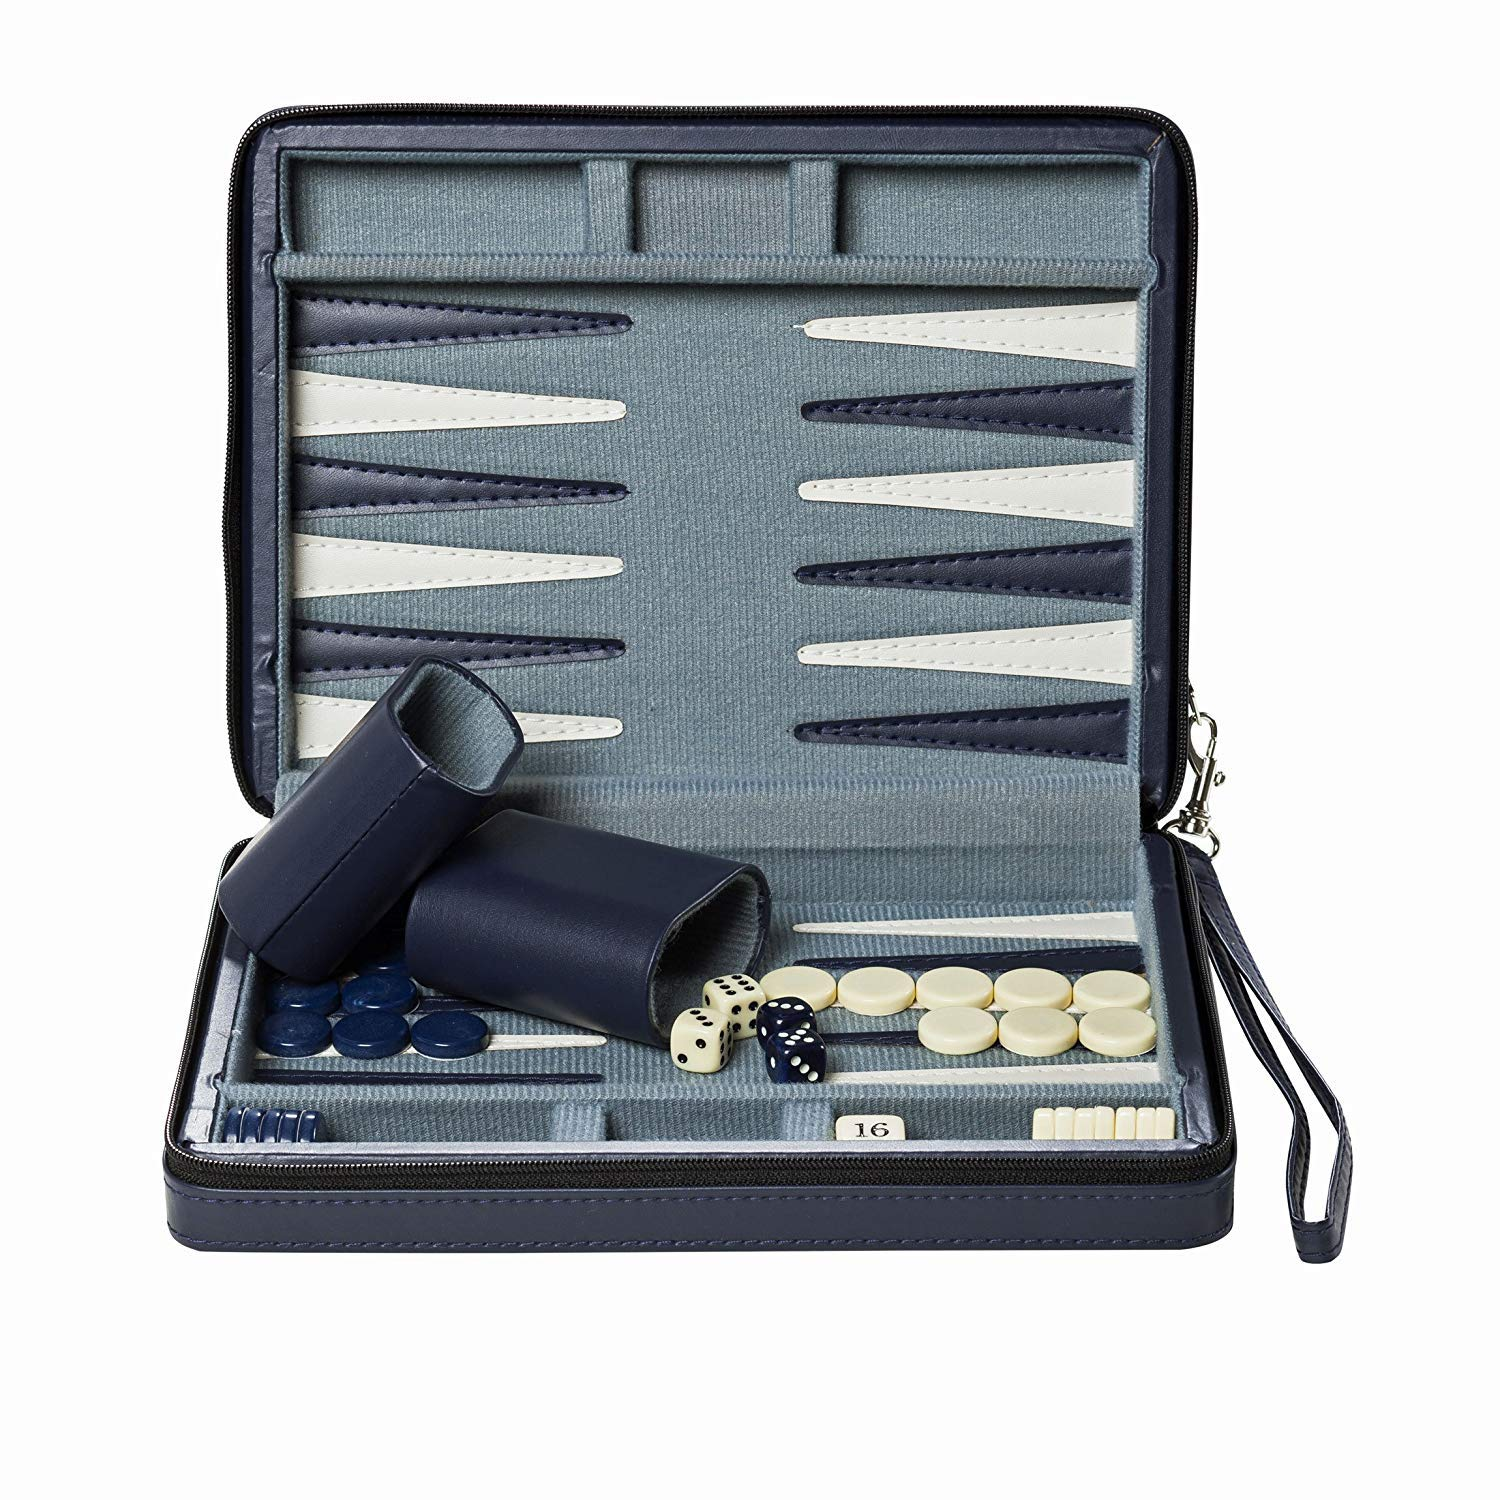 Wood Expressions WE Games Blue Magnetic Backgammon Set with Carrying Strap - Travel Size by WE Games (Image #5)